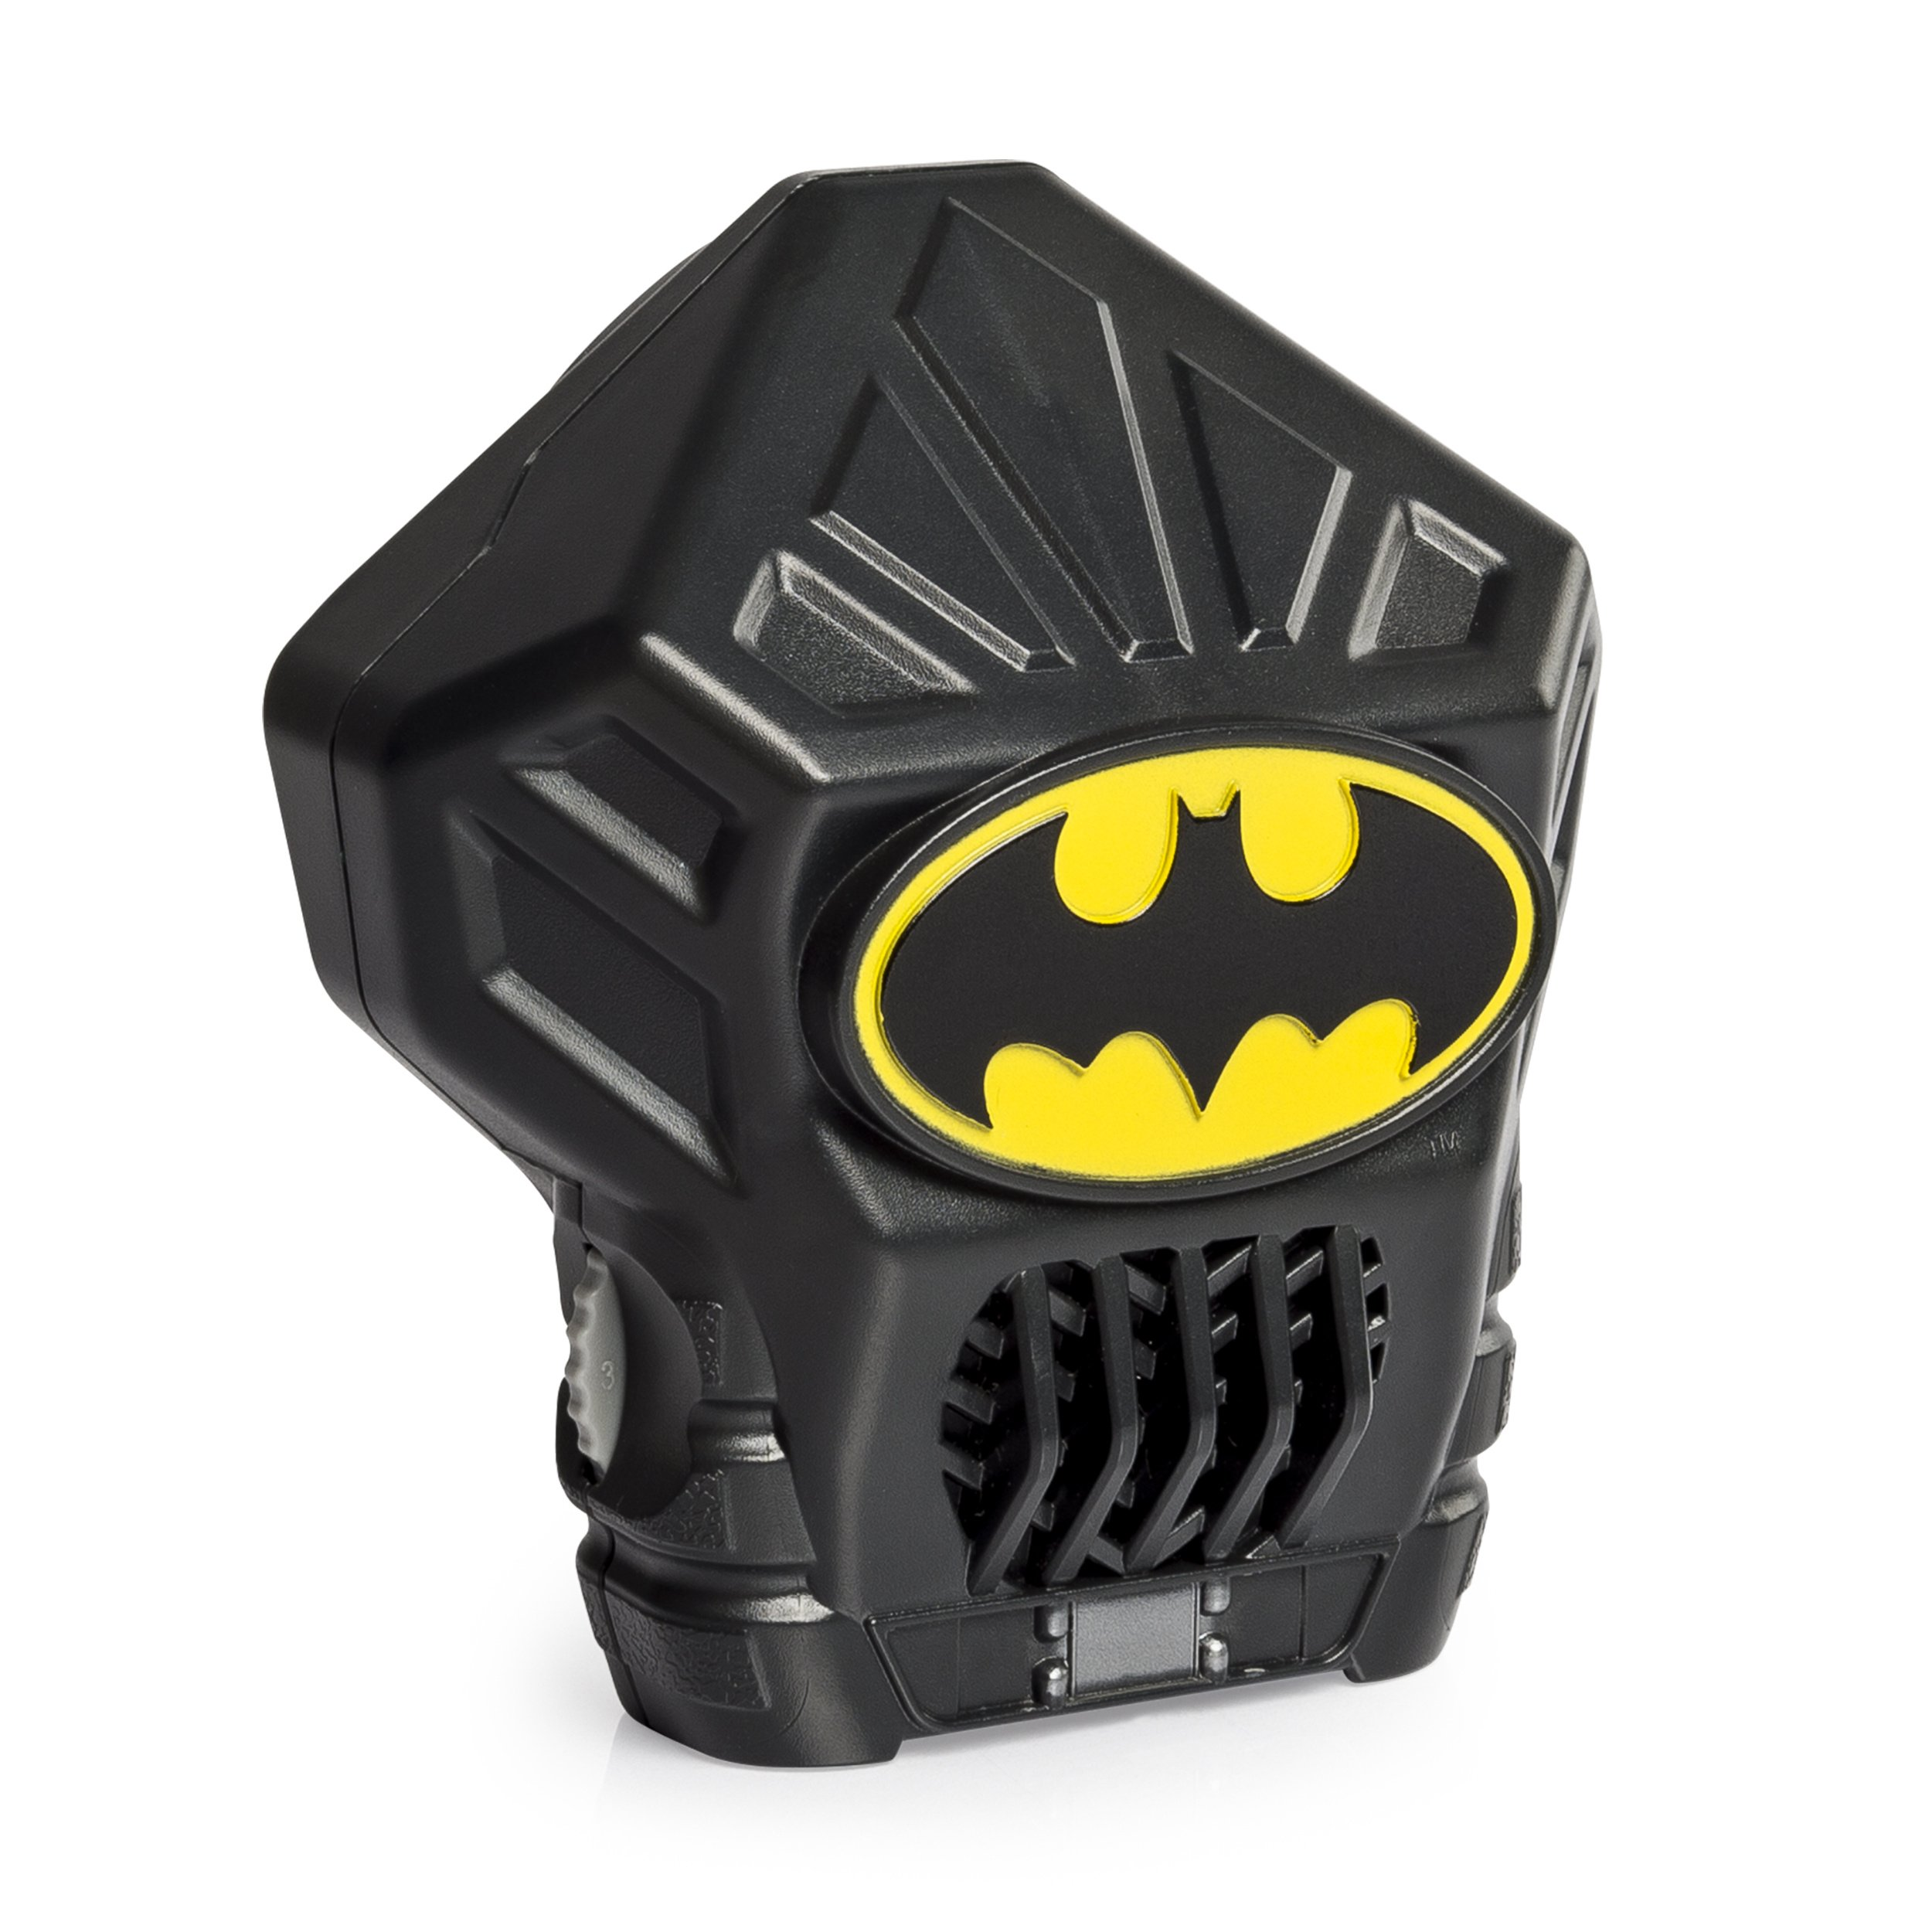 Spy Gear (6027055) Batman Voice Changer by Spy Gear